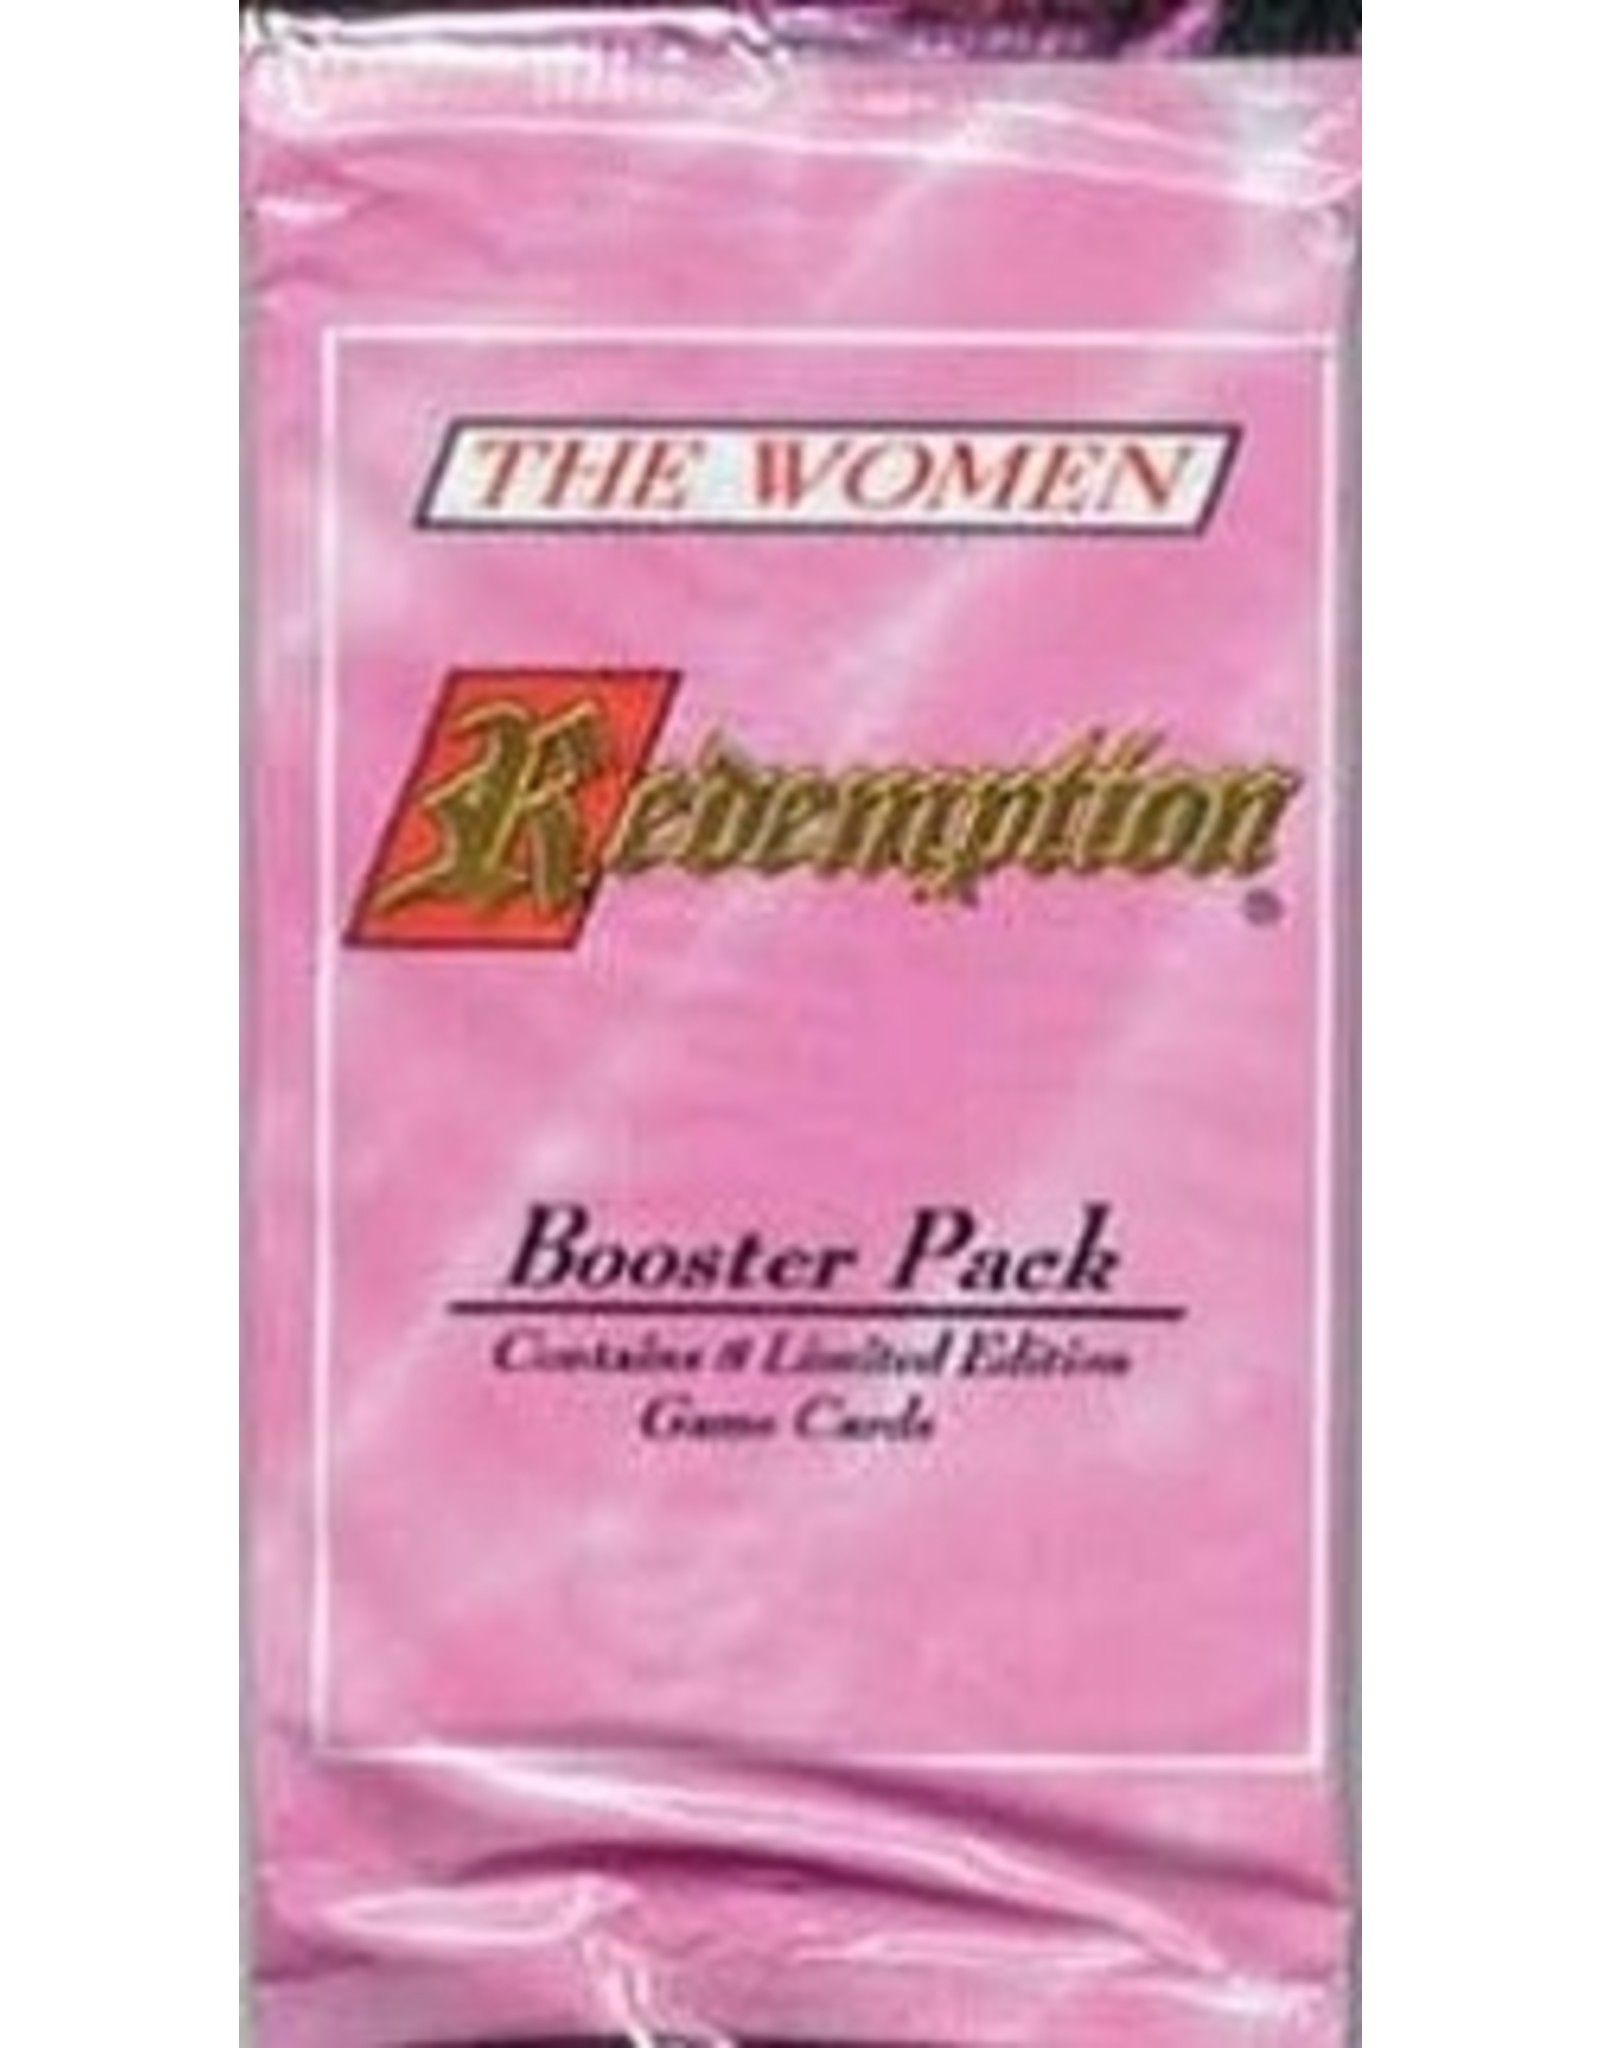 Booster Pack: Women